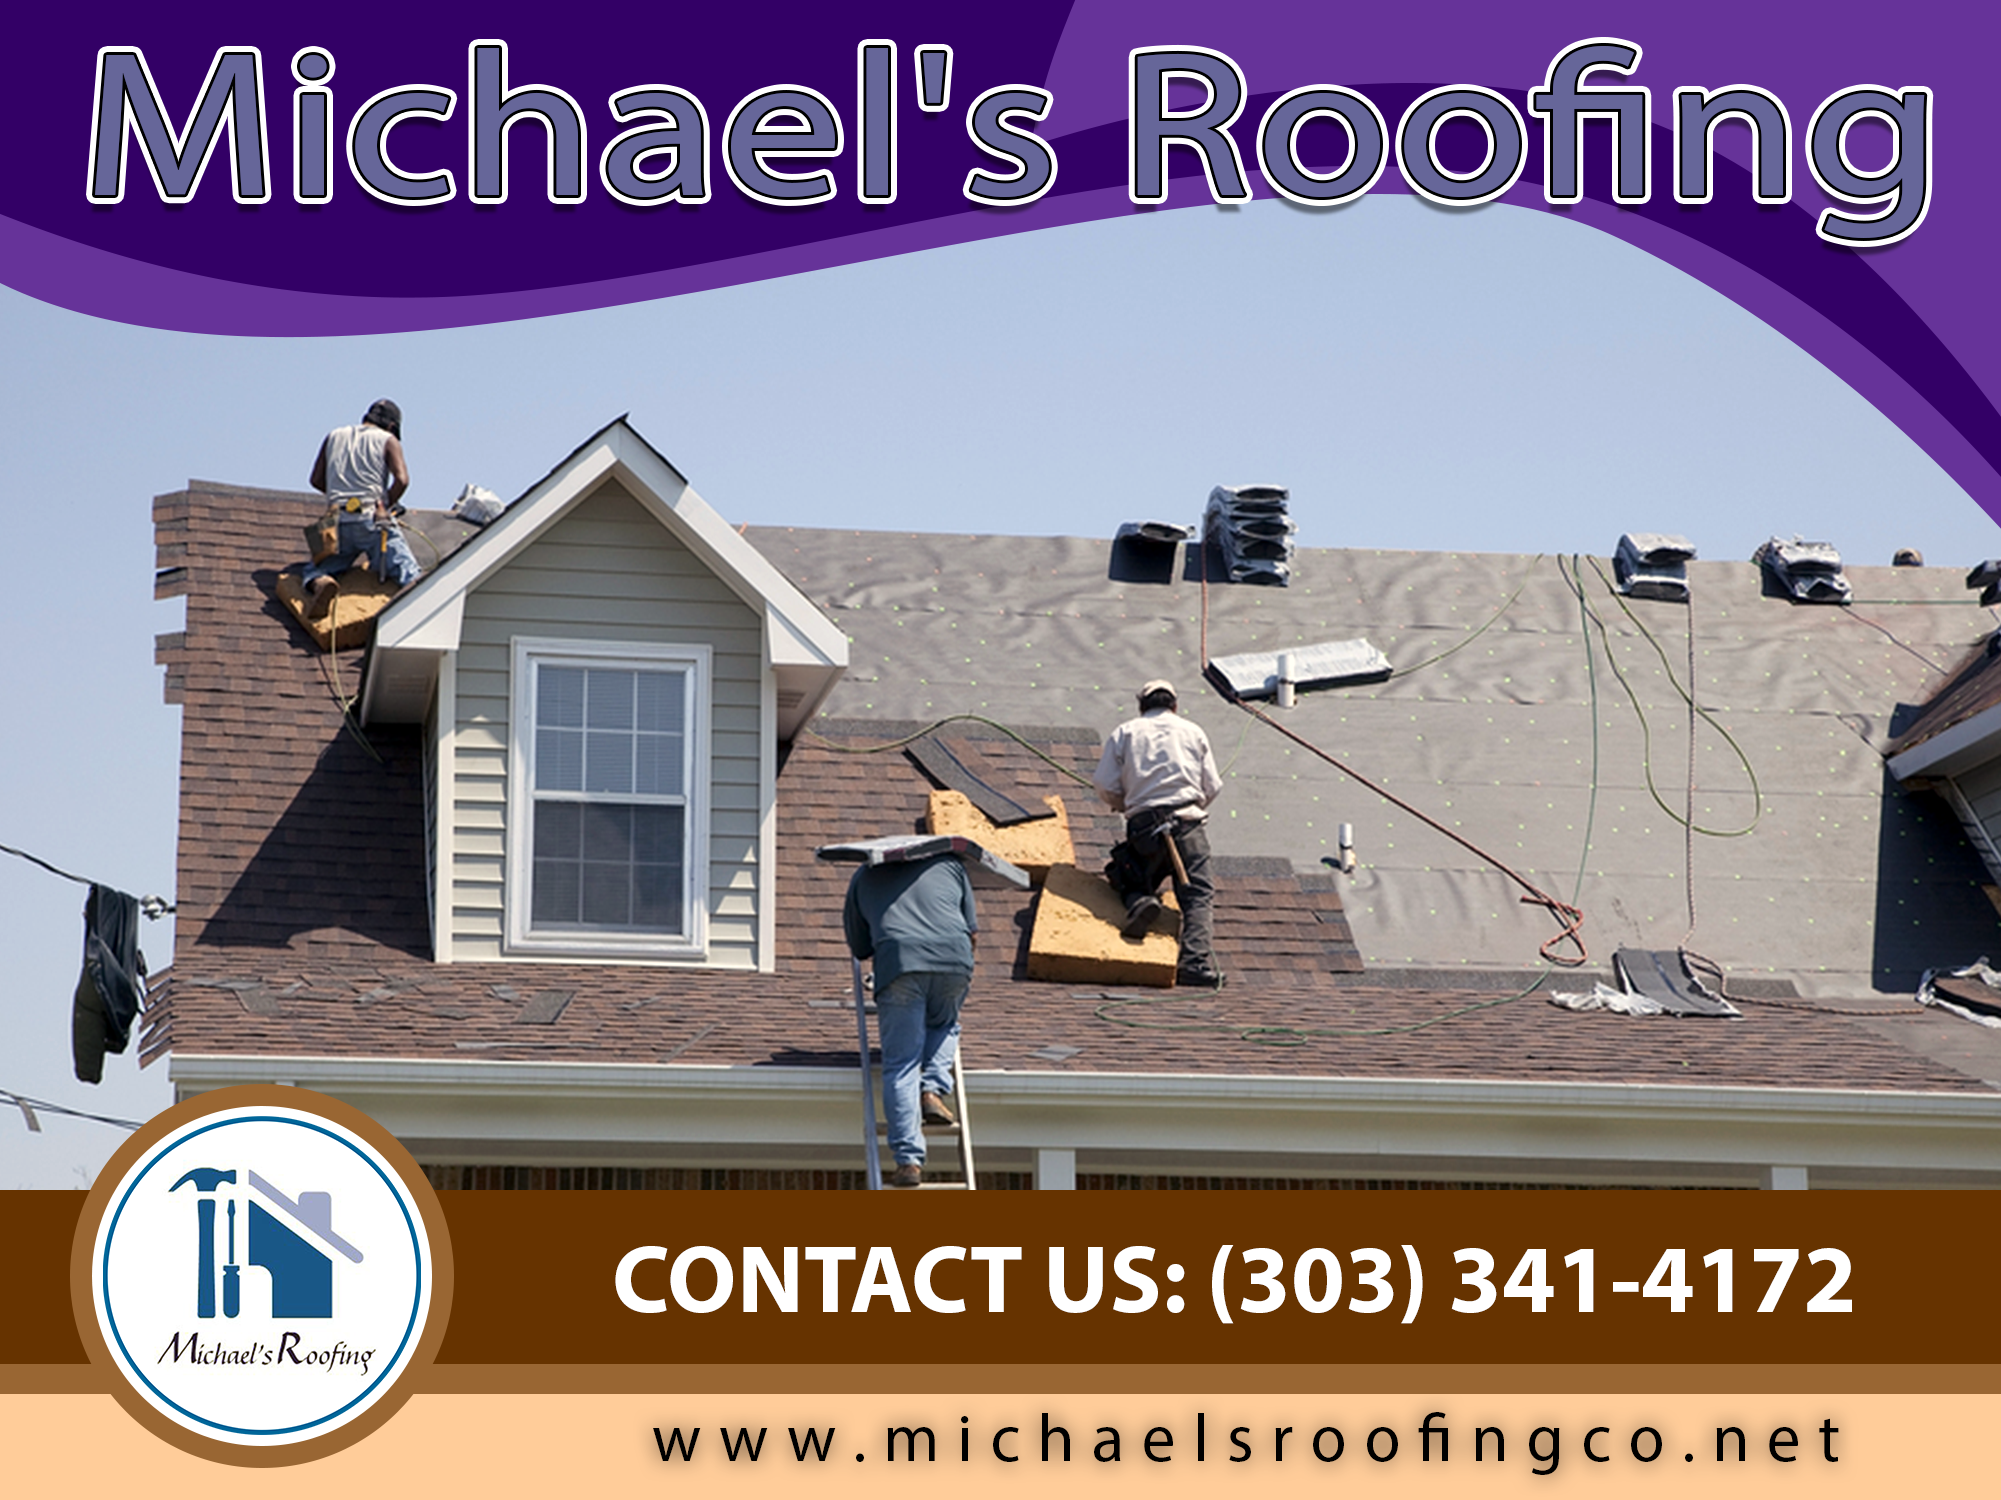 Michael S Roofing Contractors Believe In Keeping It Simple Our Clients Deserve The Highest Quality Roofing Materials Pro Roofing Reroofing Roof Installation